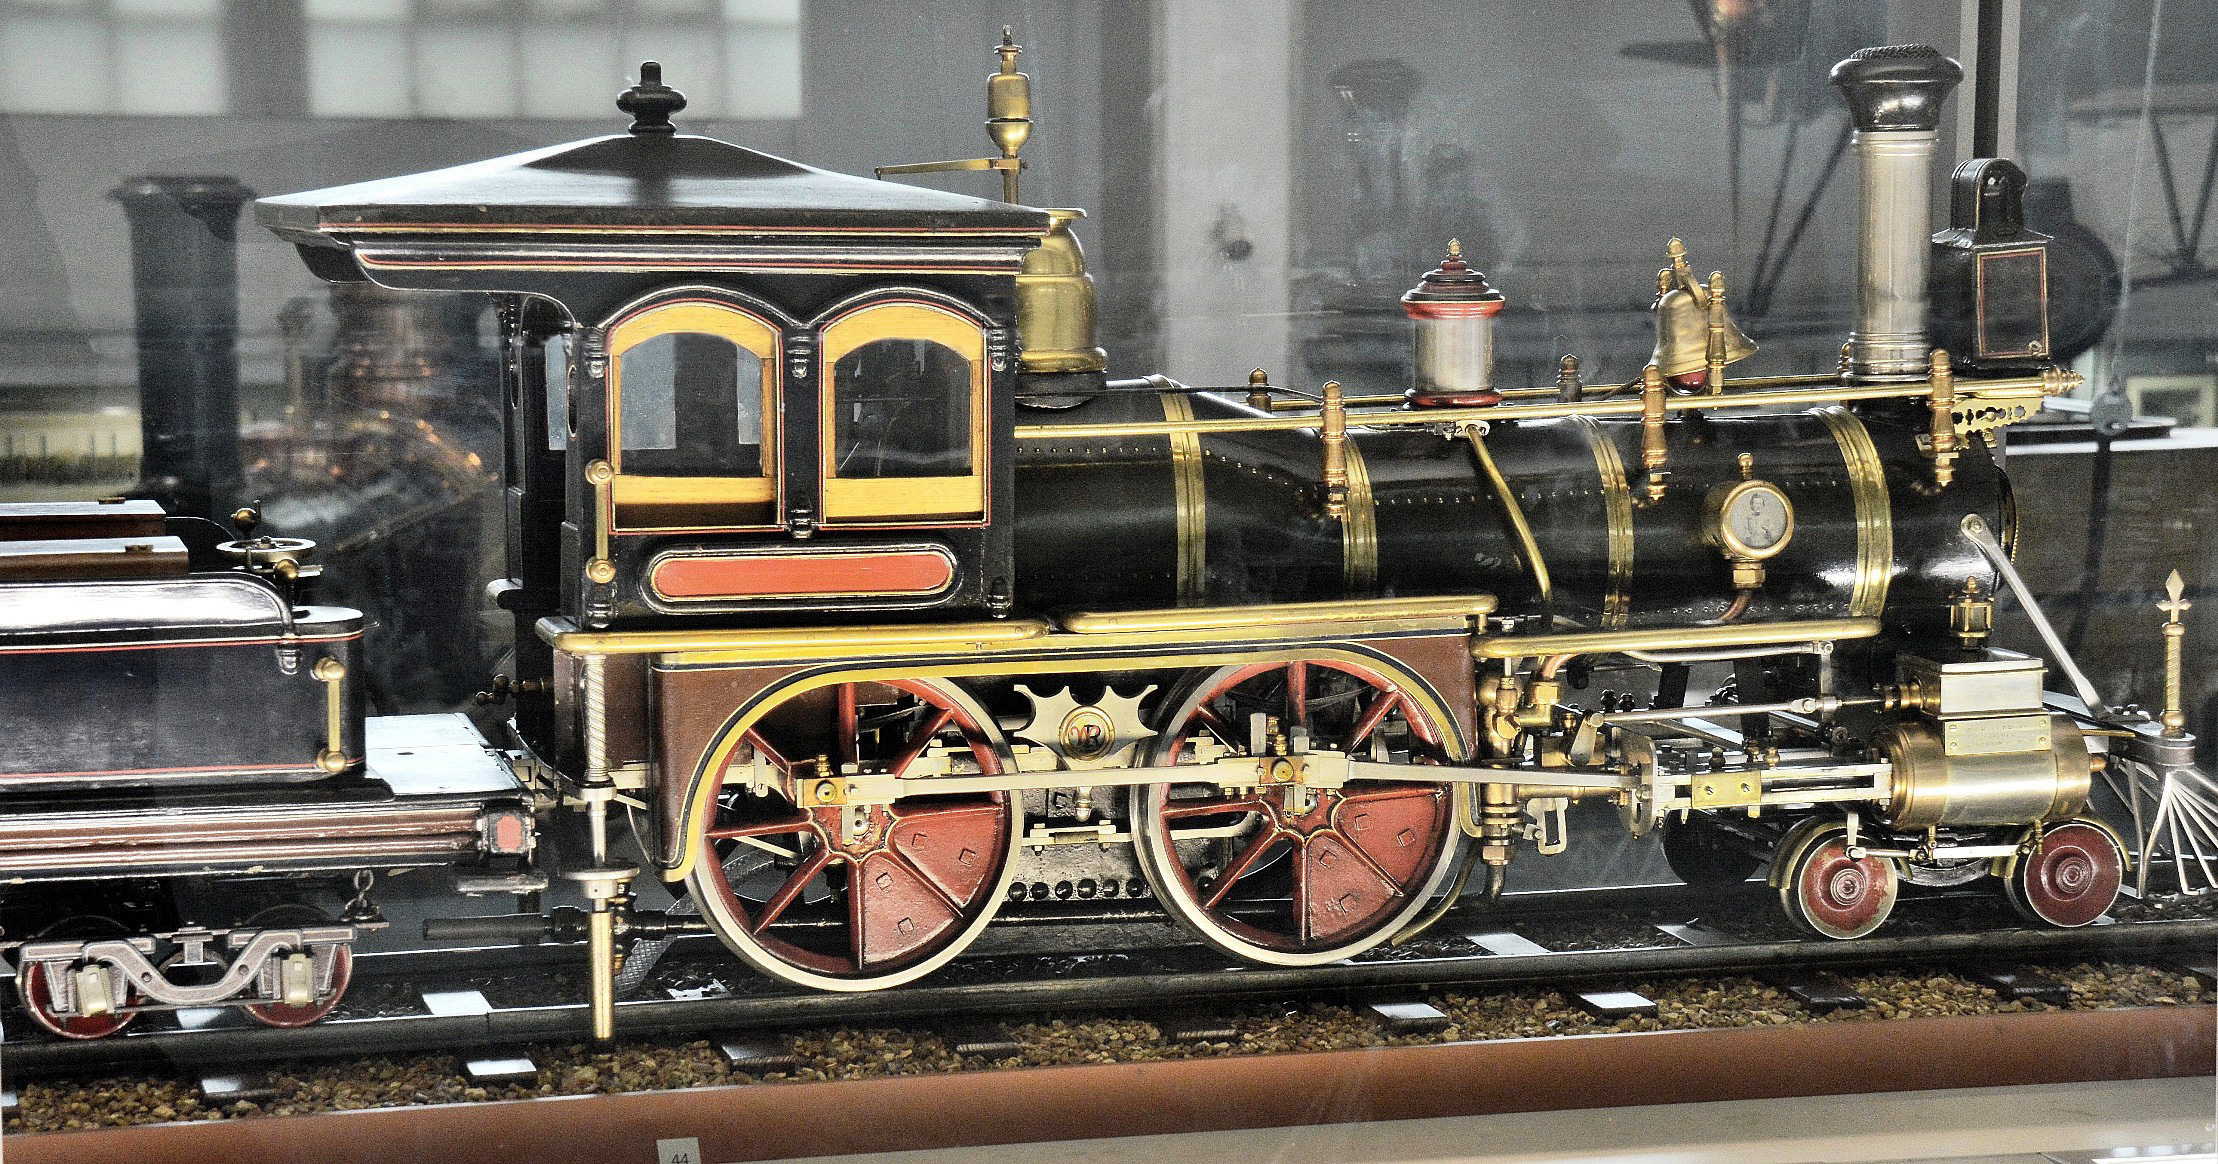 Model Steam Engines at the Science Museum | Picture This uk